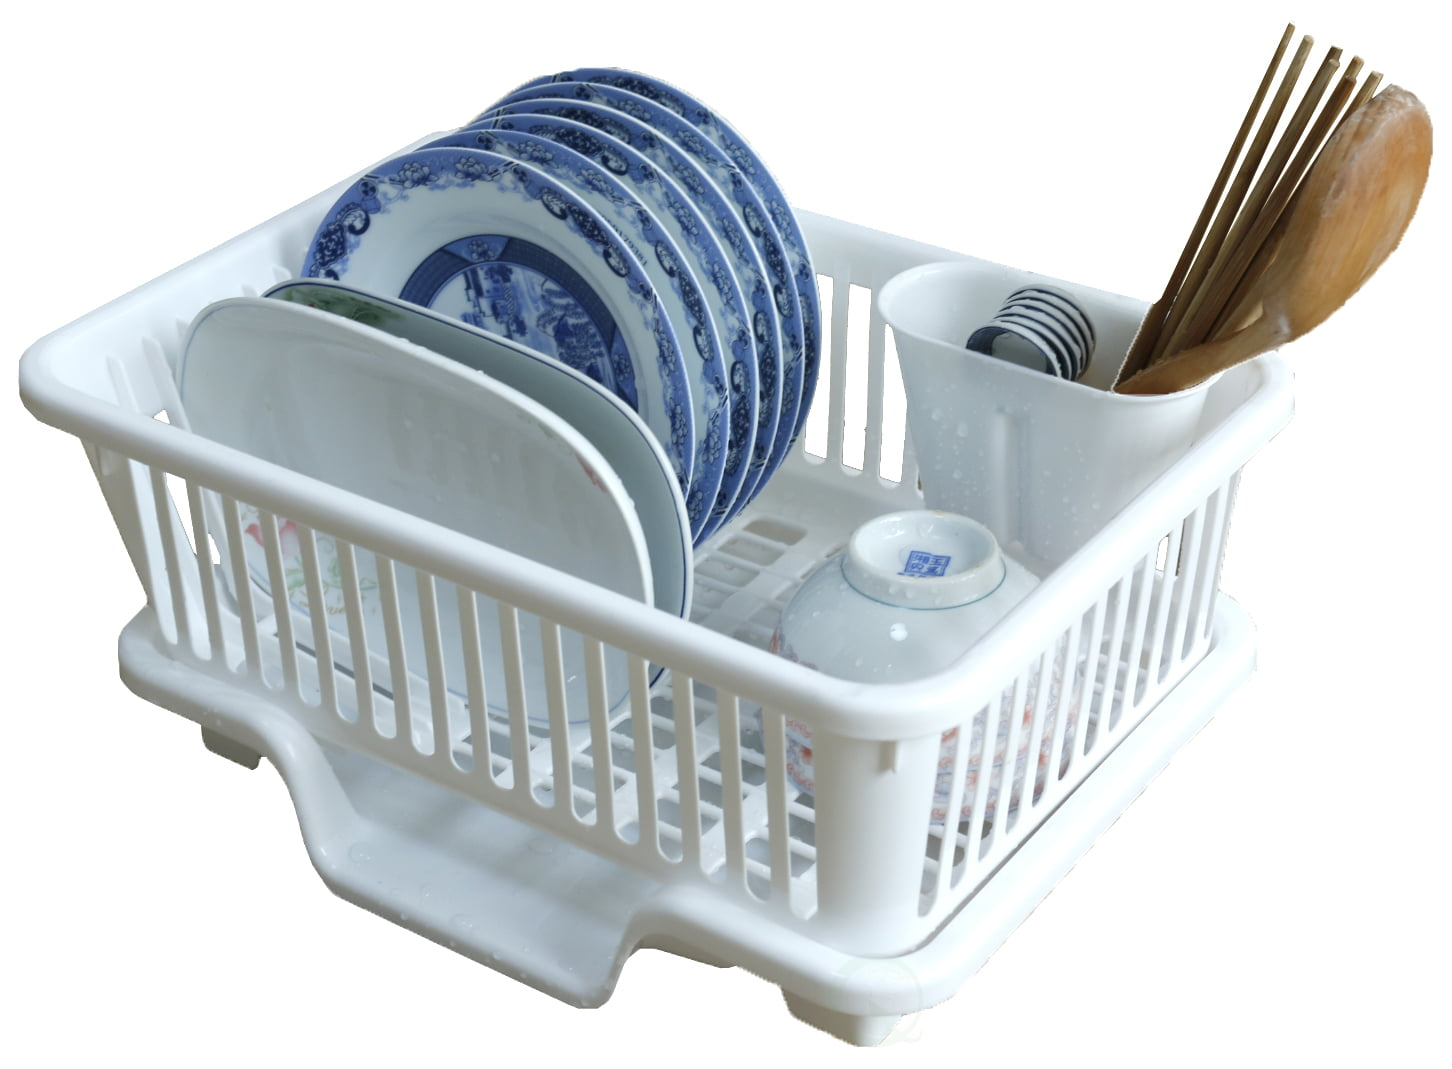 Basicwise Plastic Dish Rack with Drain Board and Utensil Cup by Quickway Imports Inc